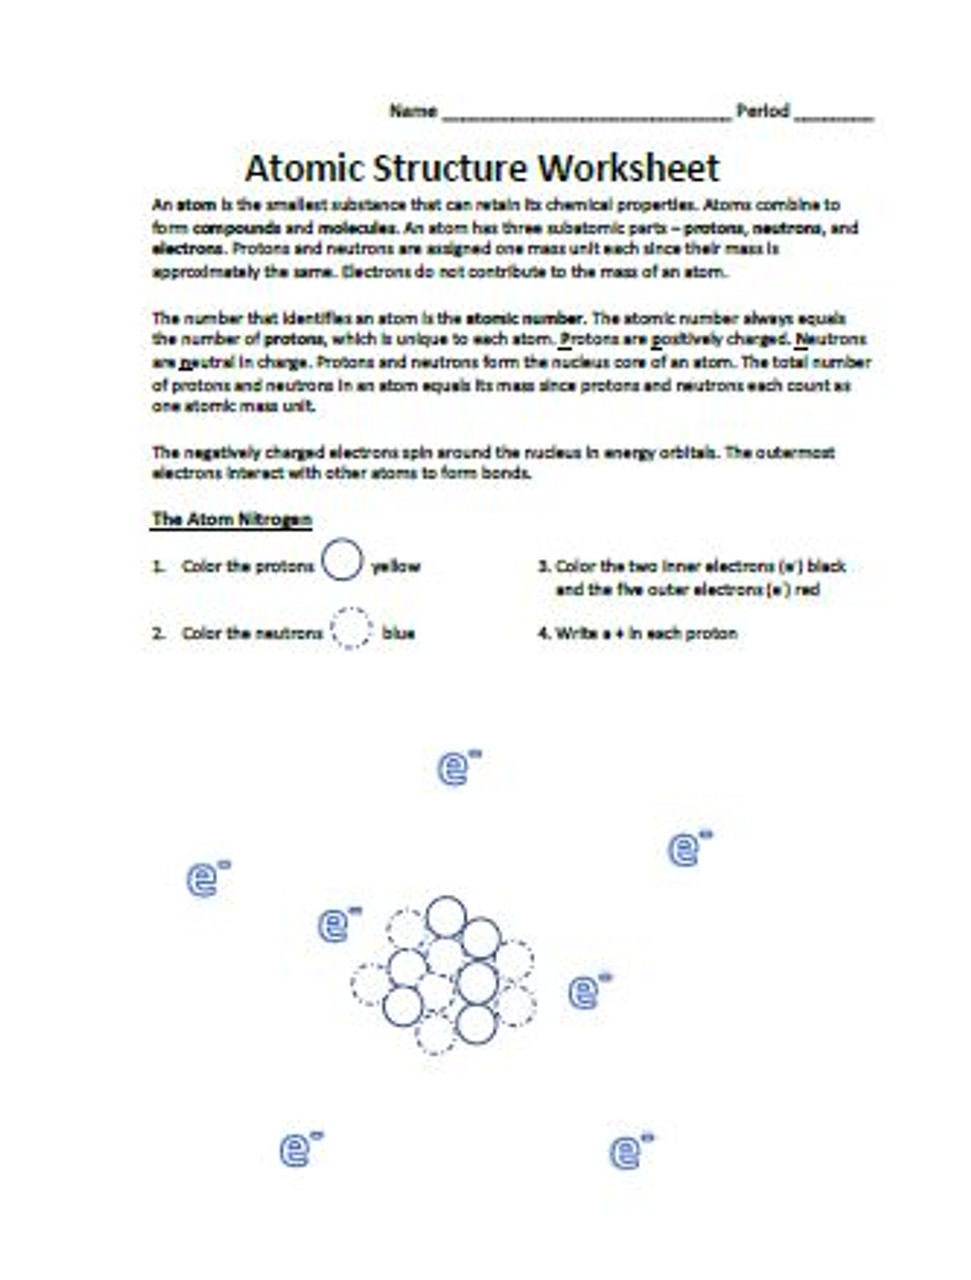 hight resolution of Atomic Structure Worksheet - Amped Up Learning